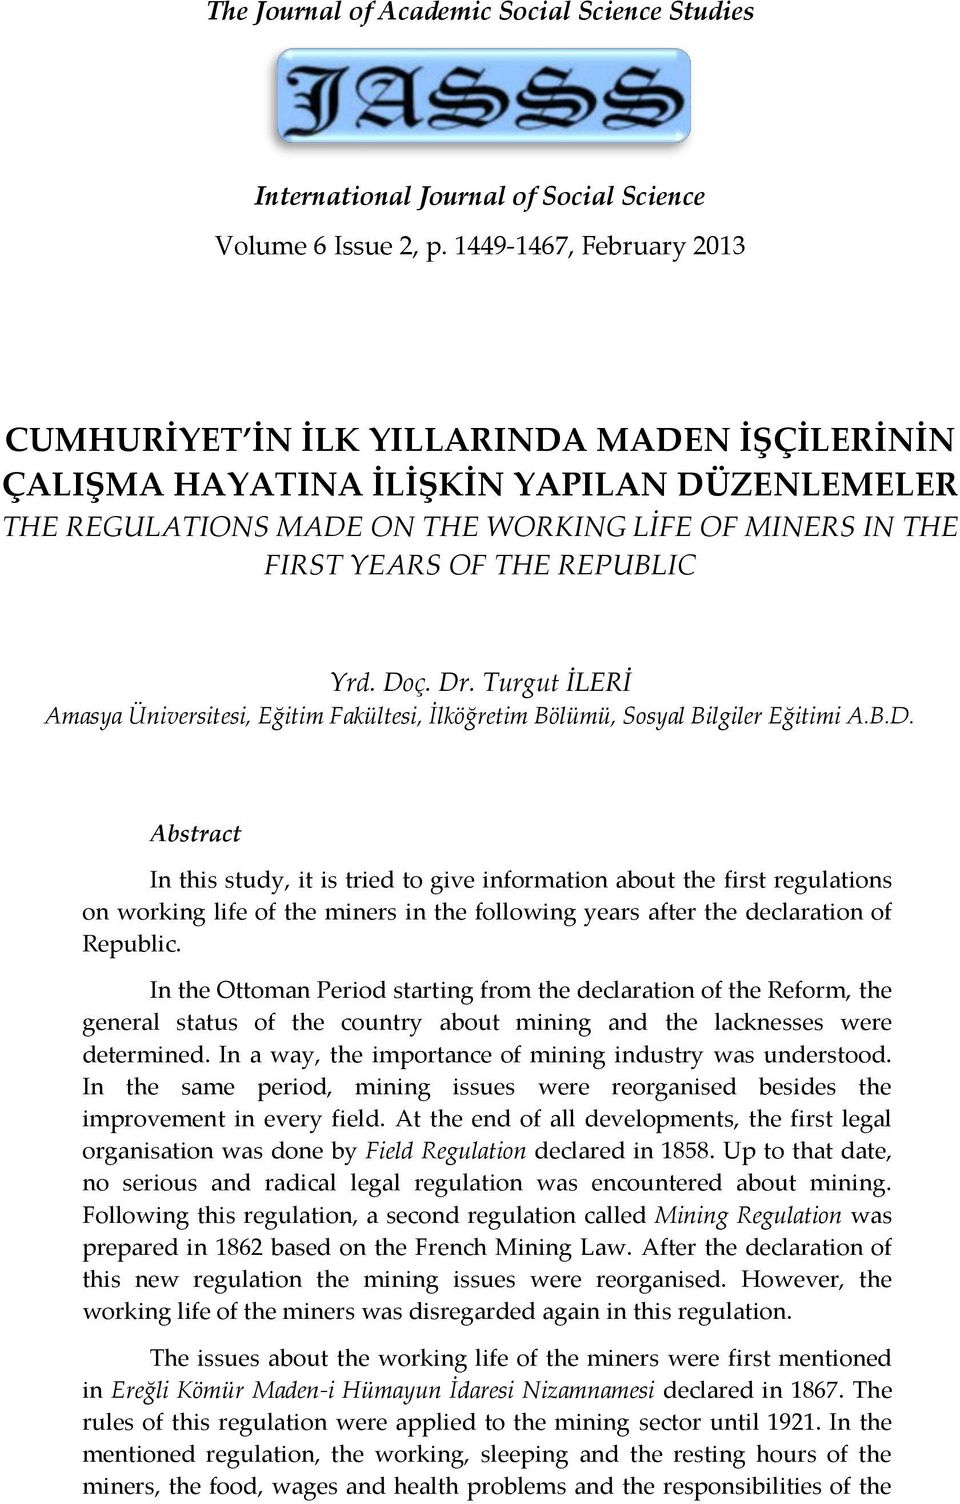 REPUBLIC Yrd. Doç. Dr. Turgut İLERİ Amasya Üniversitesi, Eğitim Fakültesi, İlköğretim Bölümü, Sosyal Bilgiler Eğitimi A.B.D. Abstract In this study, it is tried to give information about the first regulations on working life of the miners in the following years after the declaration of Republic.